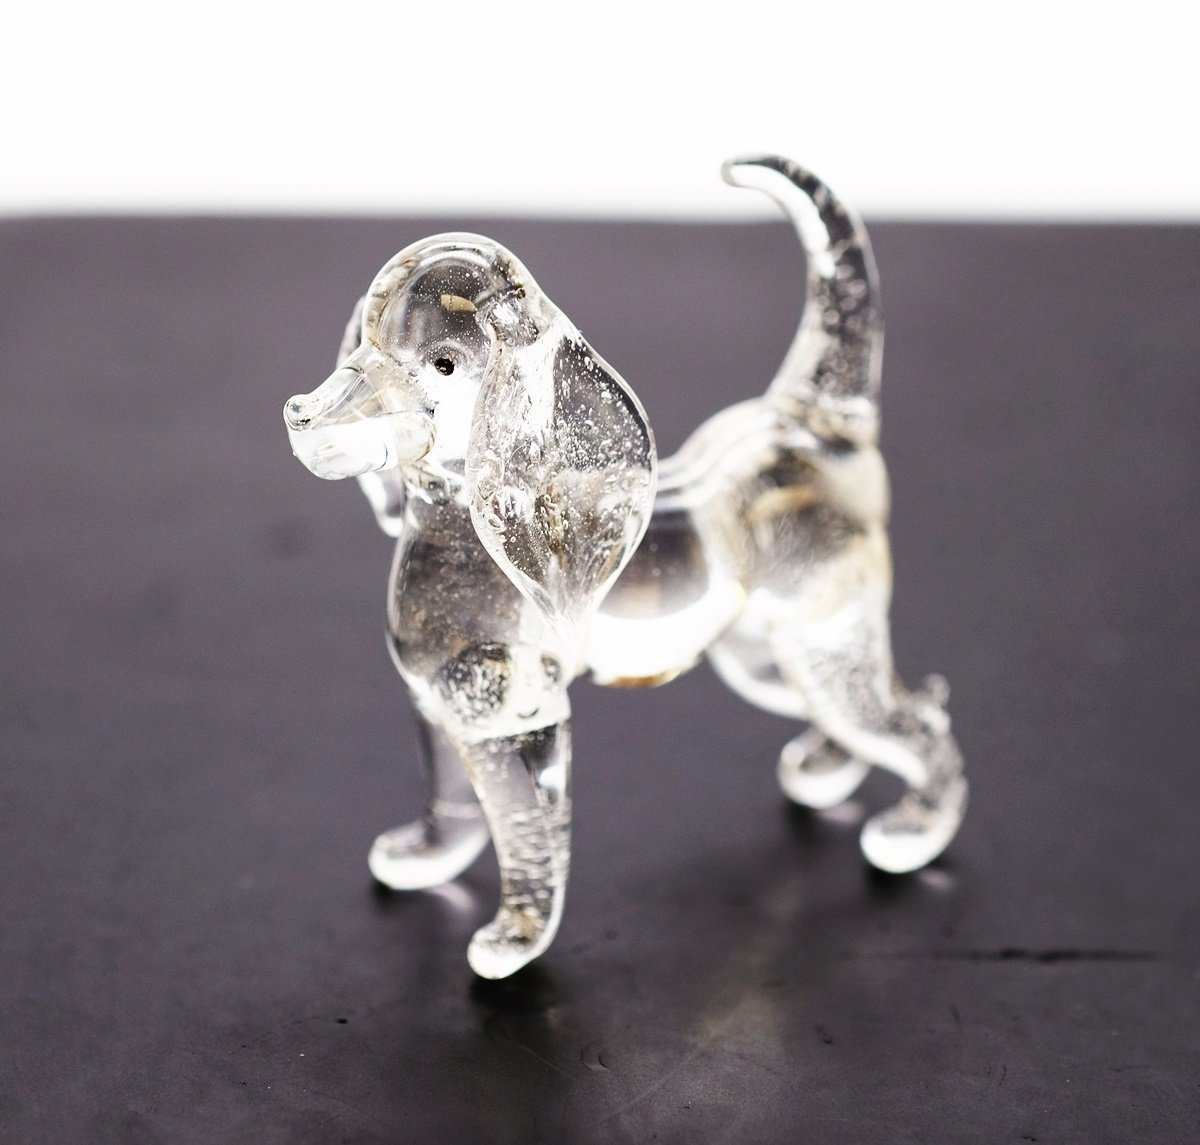 3 D Crystal Toy Basset Hound Hand Bowl Glass Dollhouse Miniatures Decoration CoolPrice Glass